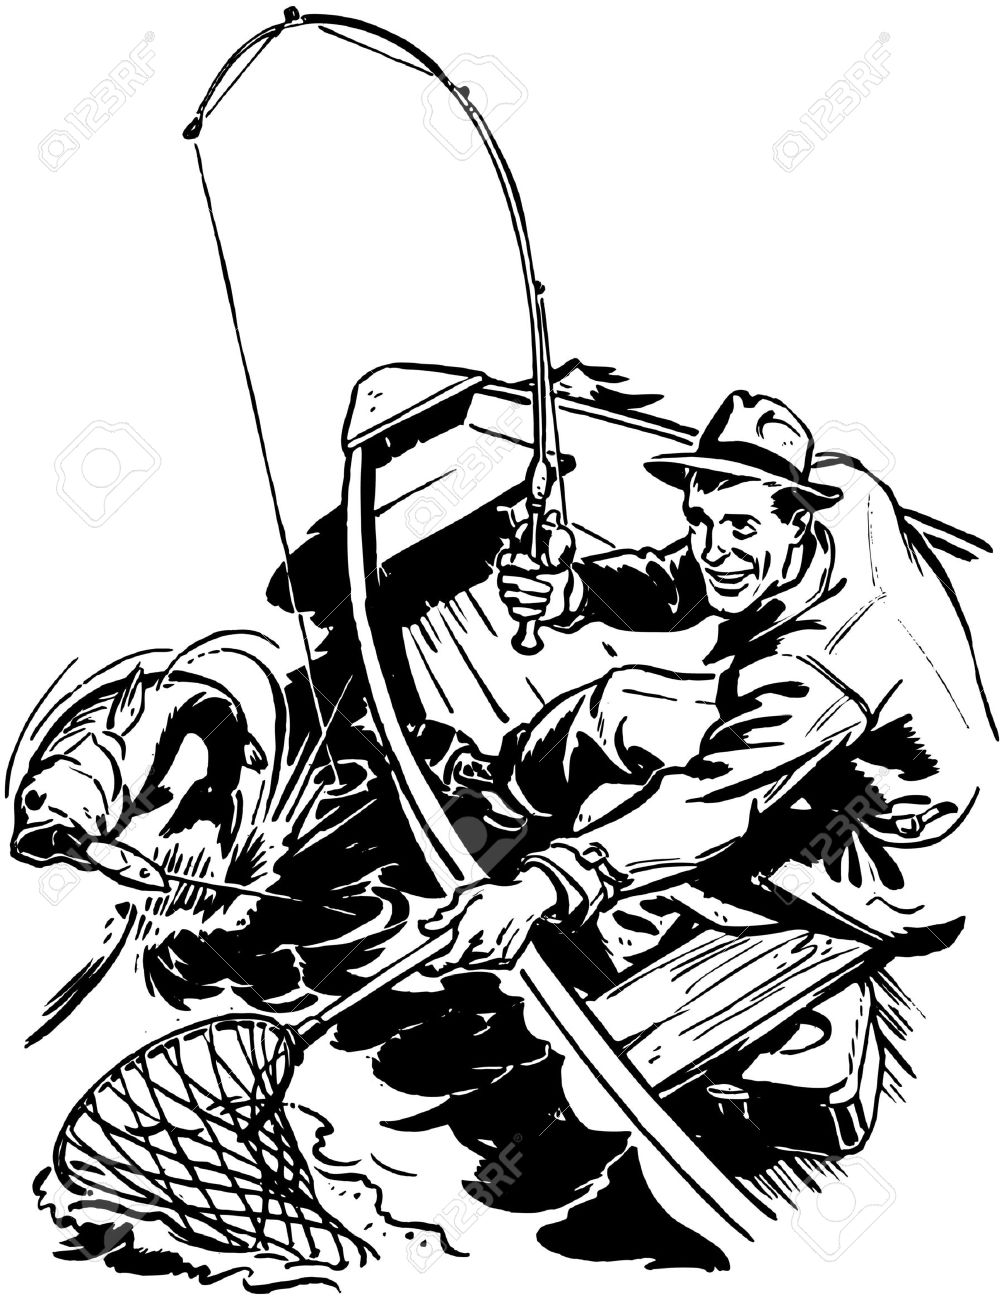 1004x1300 Fisherman Catching Fish Royalty Free Cliparts, Vectors, And Stock